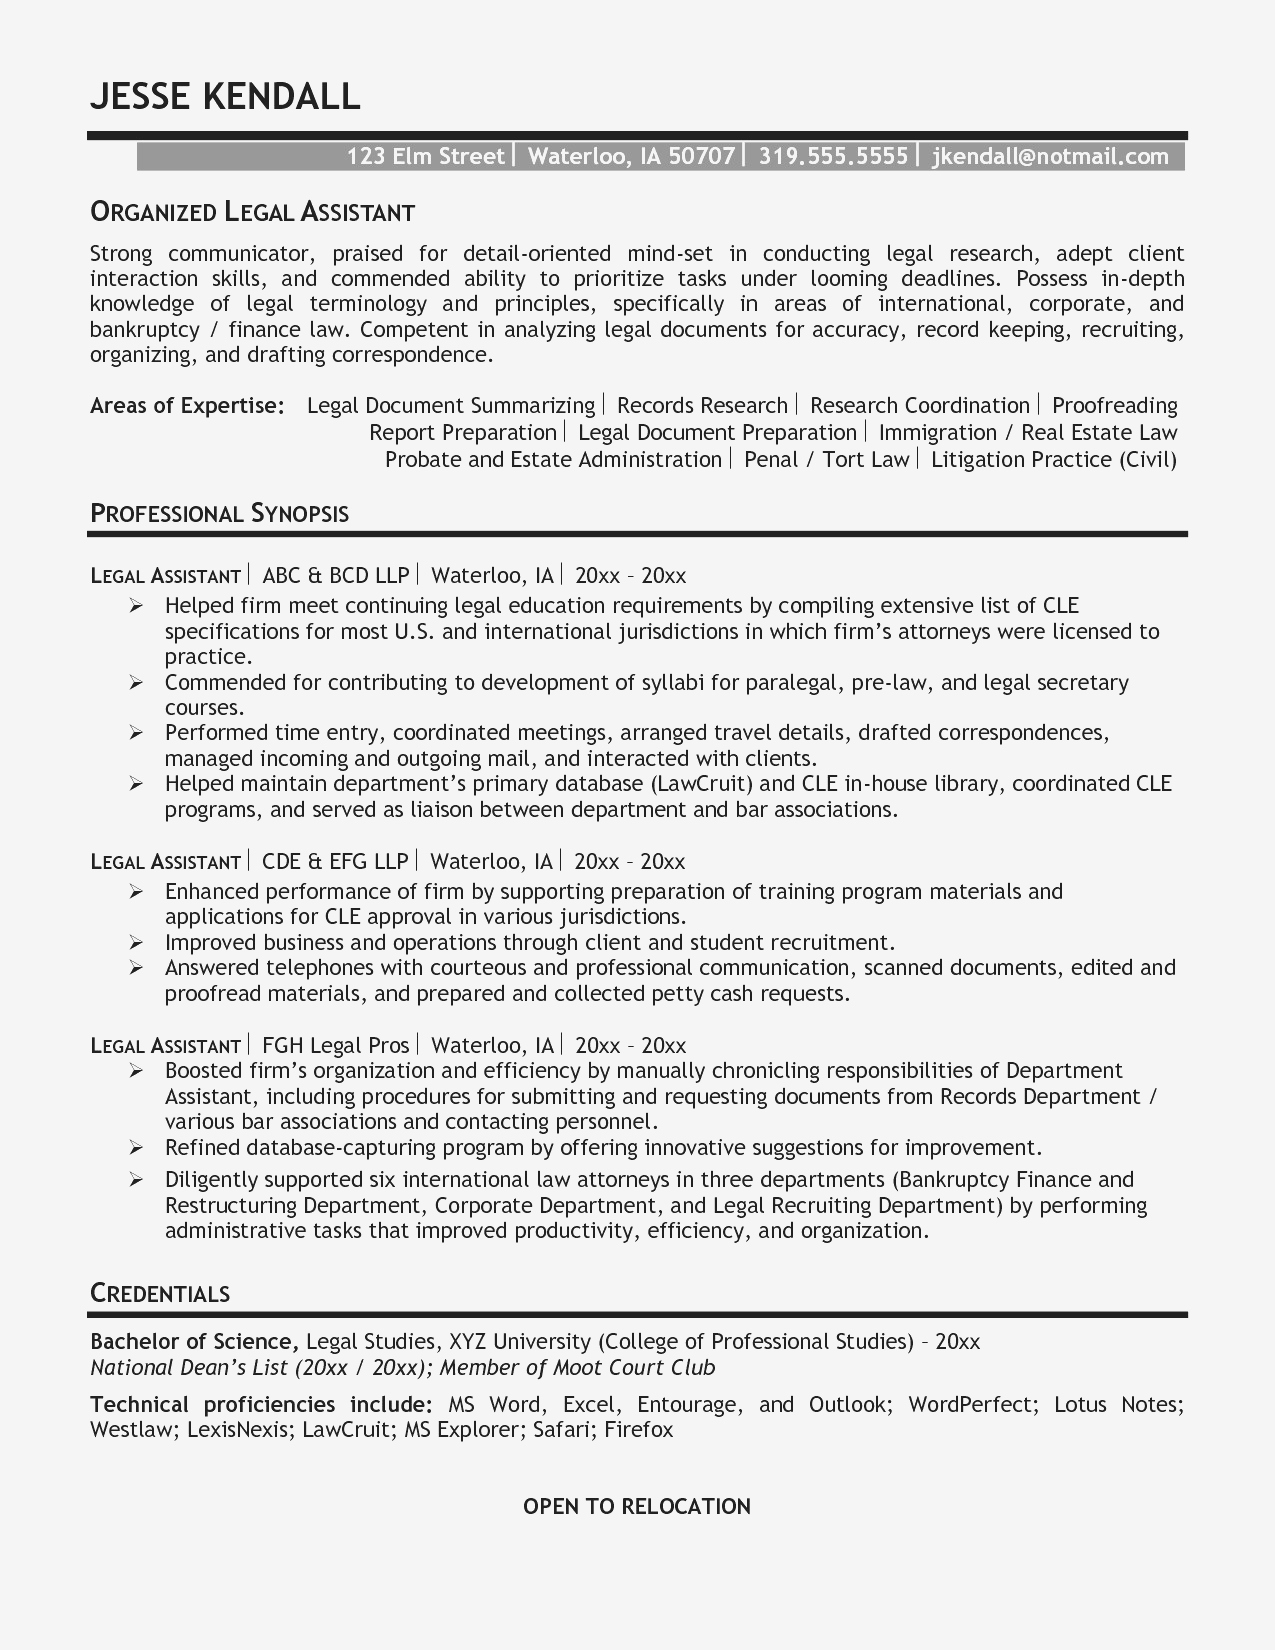 Legal assistant Resume Template - Real Estate Administration Sample Resume